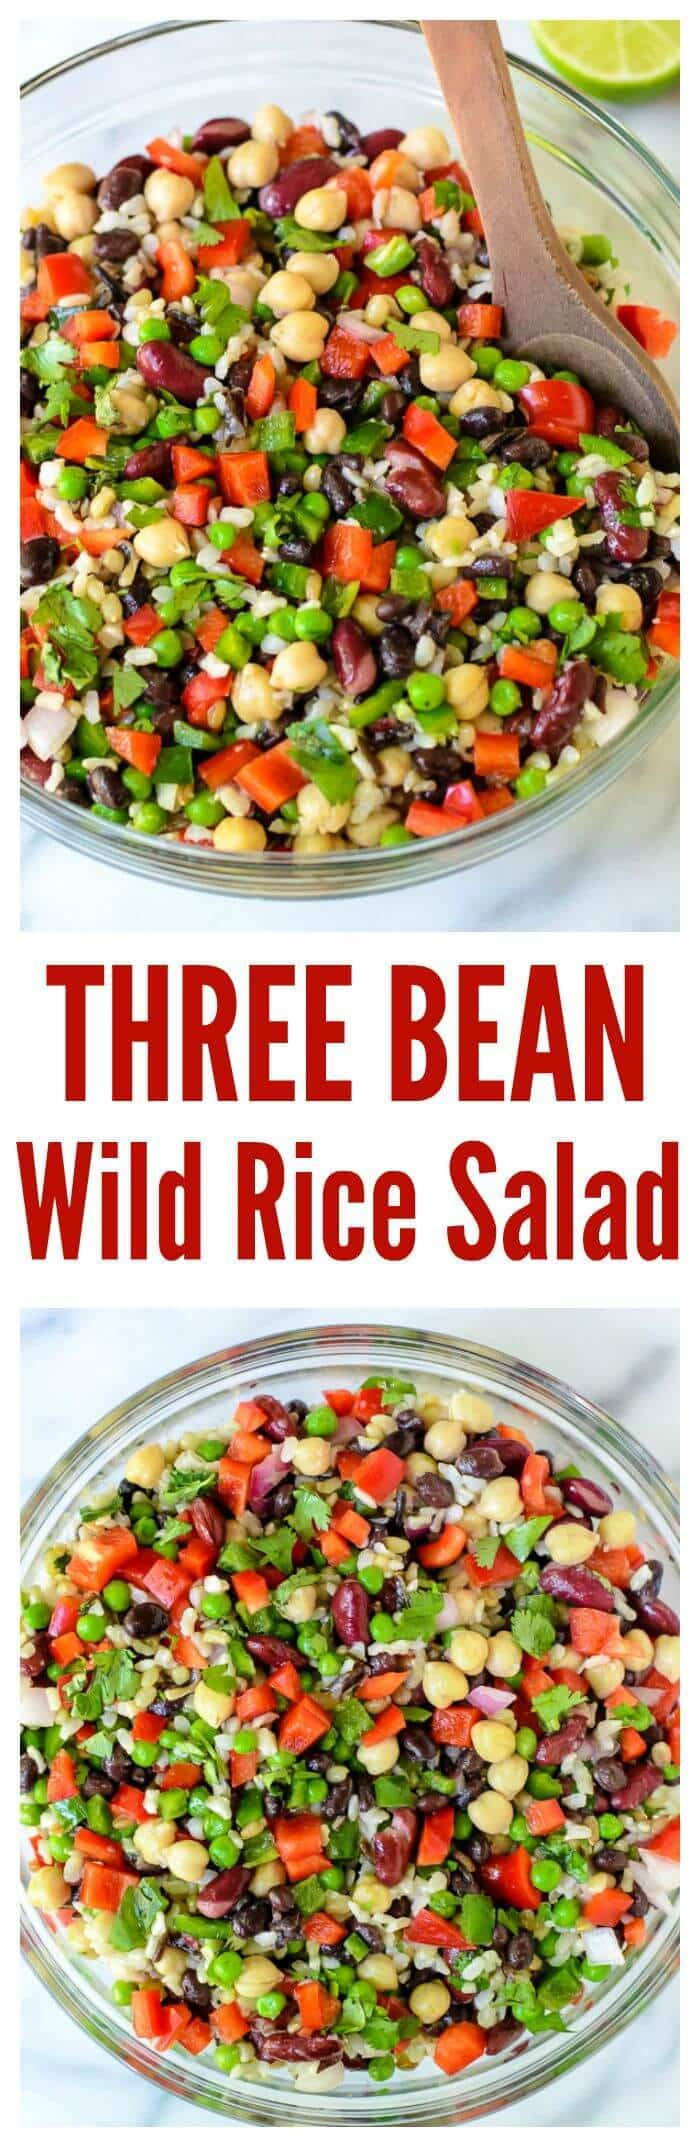 Three Bean Wild Rice Salad. The ultimate potluck recipe!